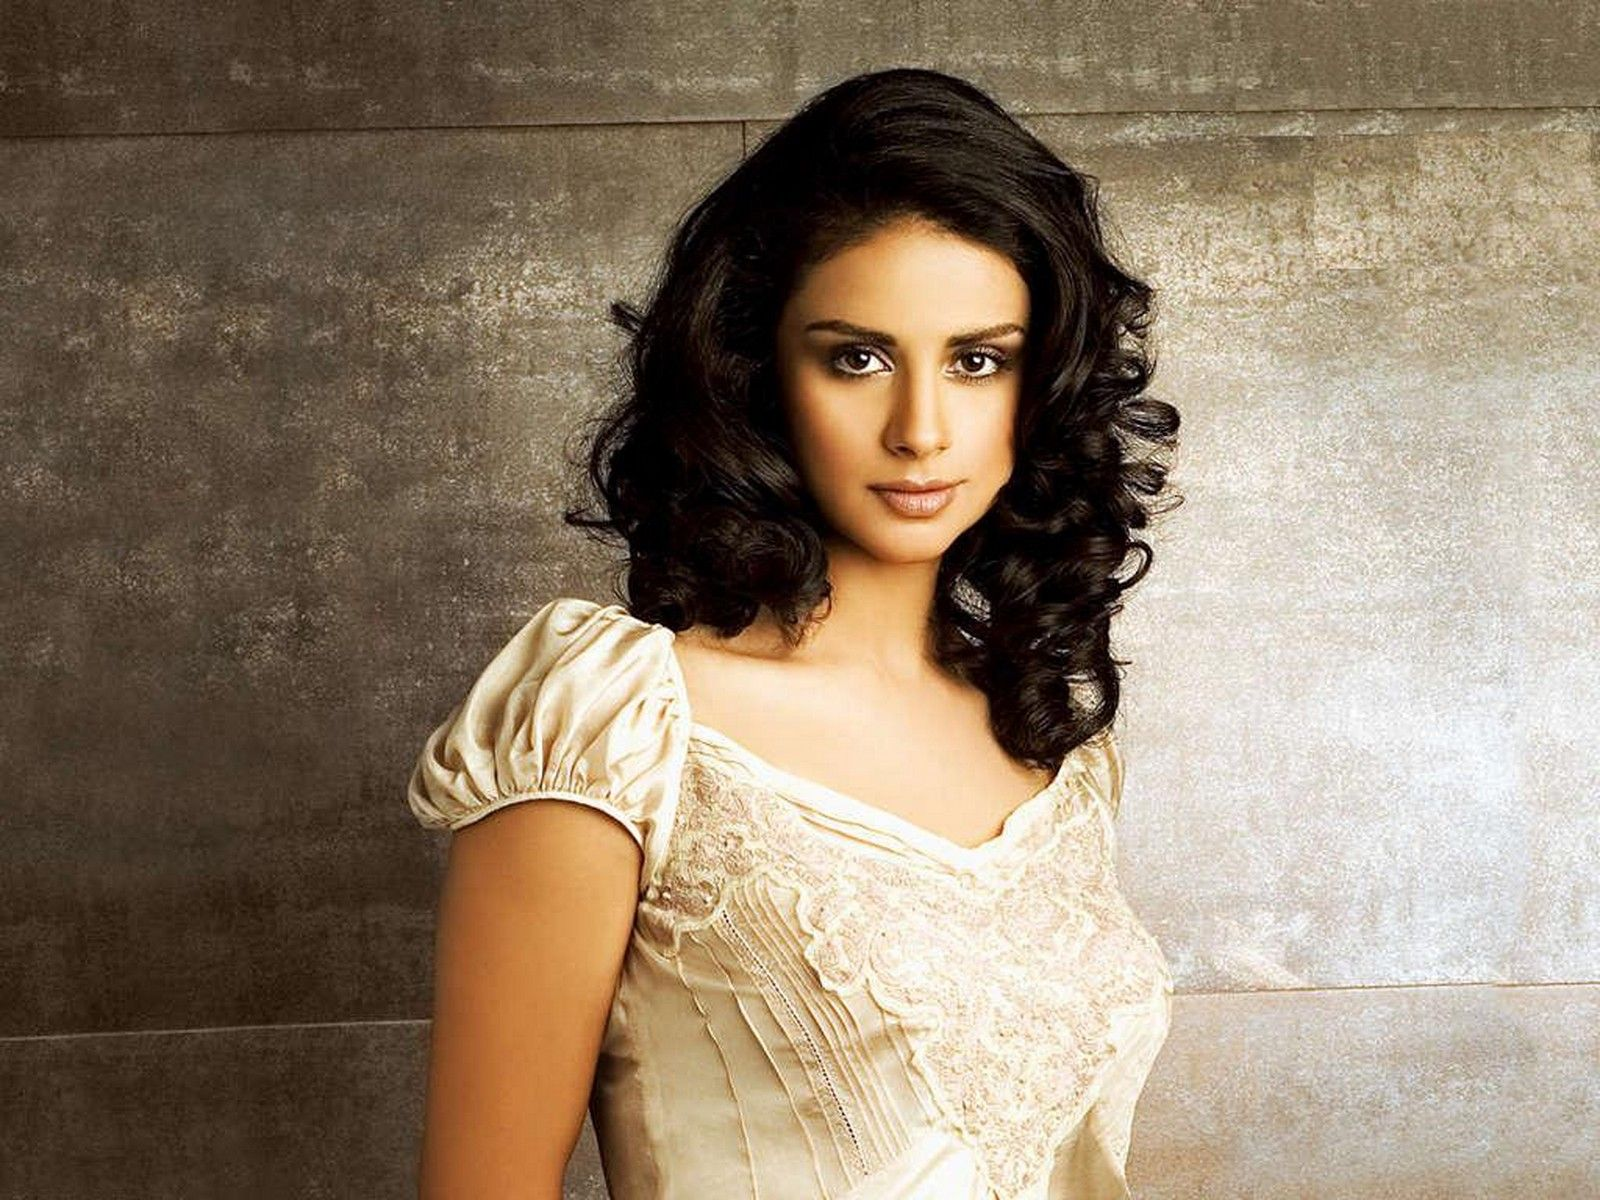 Actress Gul Panag Hot Wallpapers, Pictures, Gul Panag Images, Gul ...